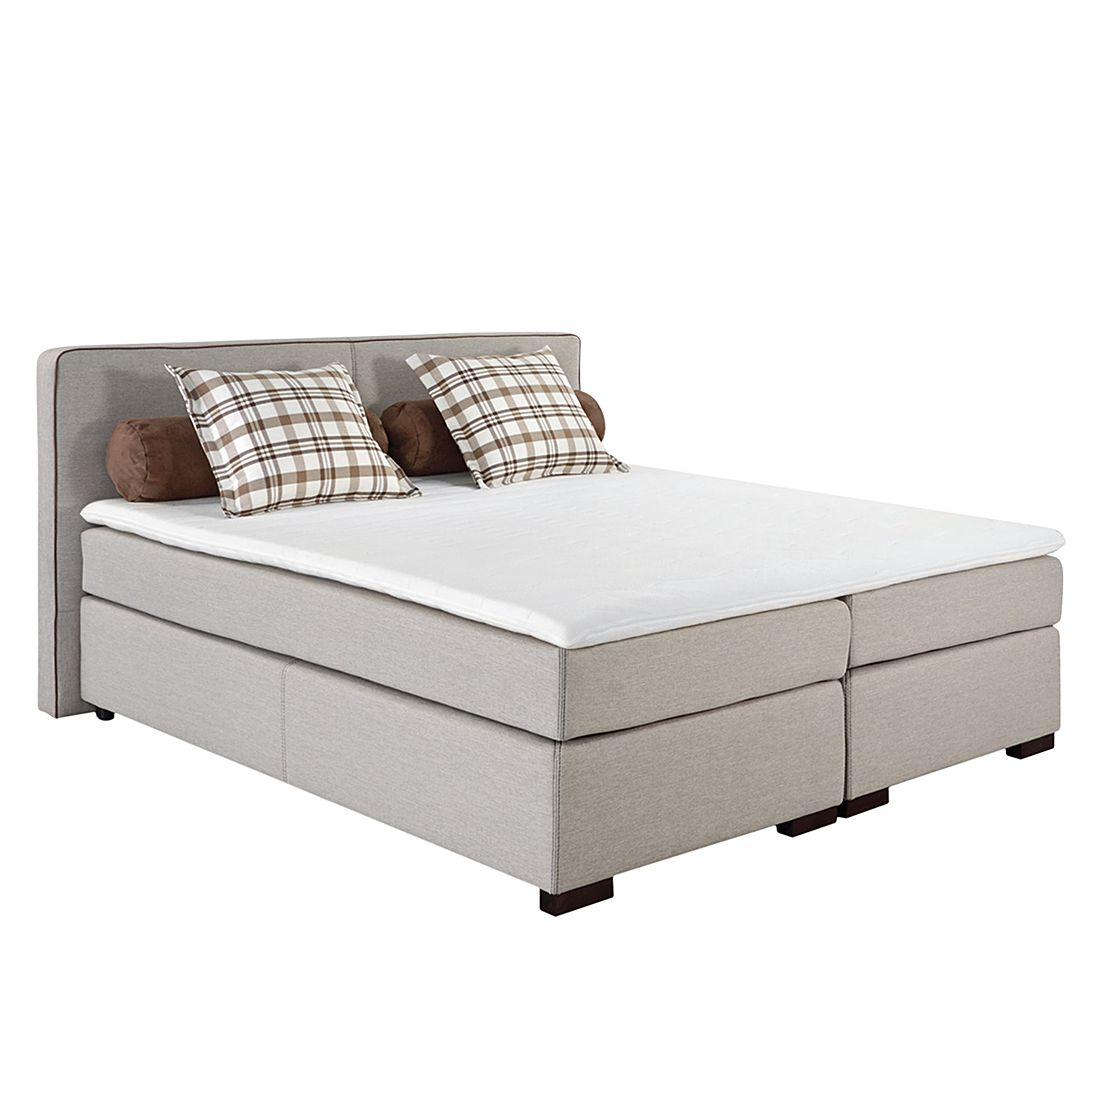 goedkoop Boxspring Darling incl. topper 140 x 200cm Home Design